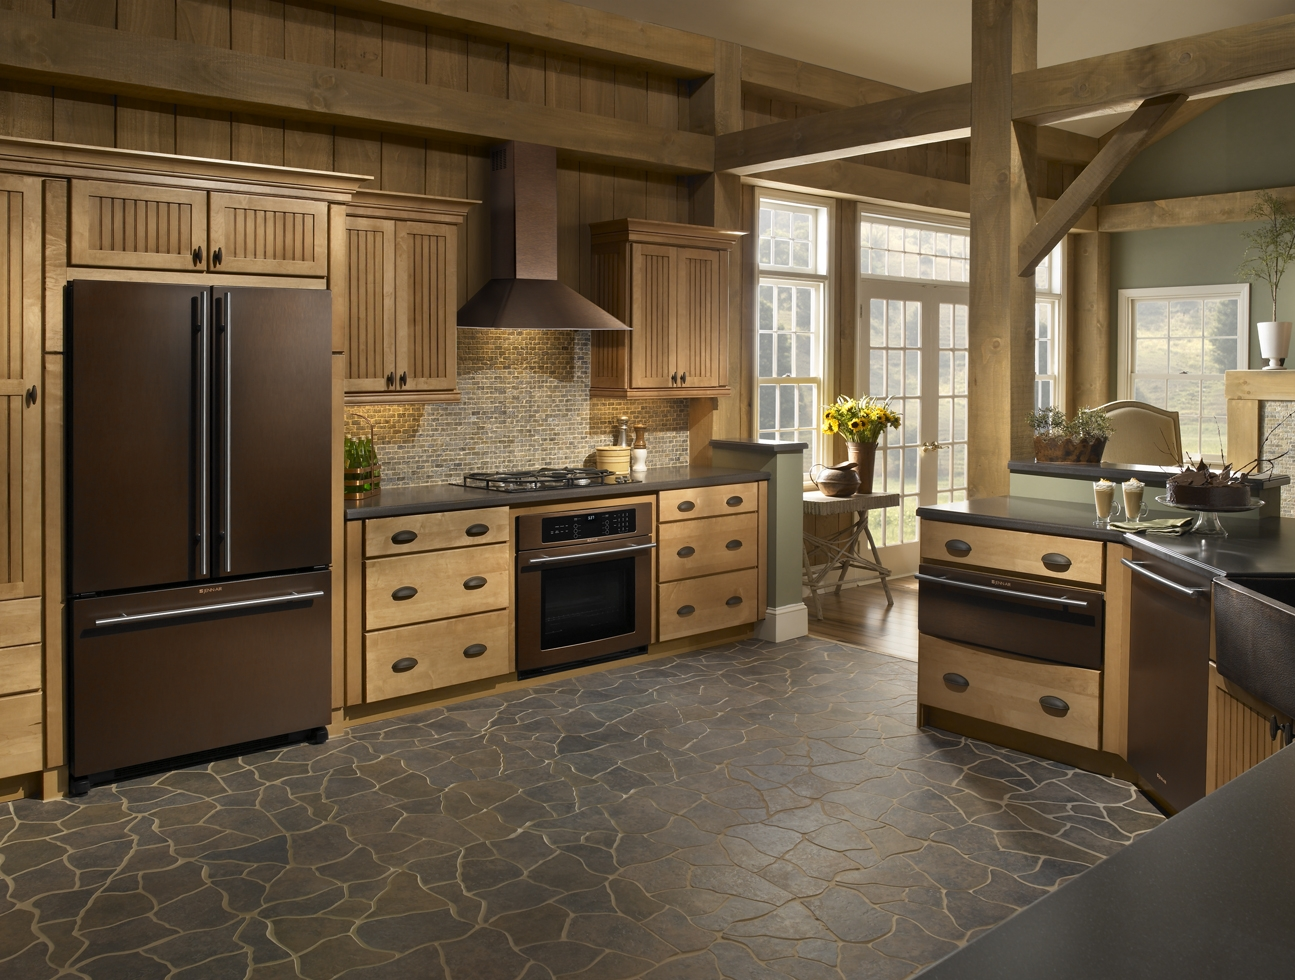 Kitchen and Residential Design: Jenn-Air's new finish, Oiled Bronze